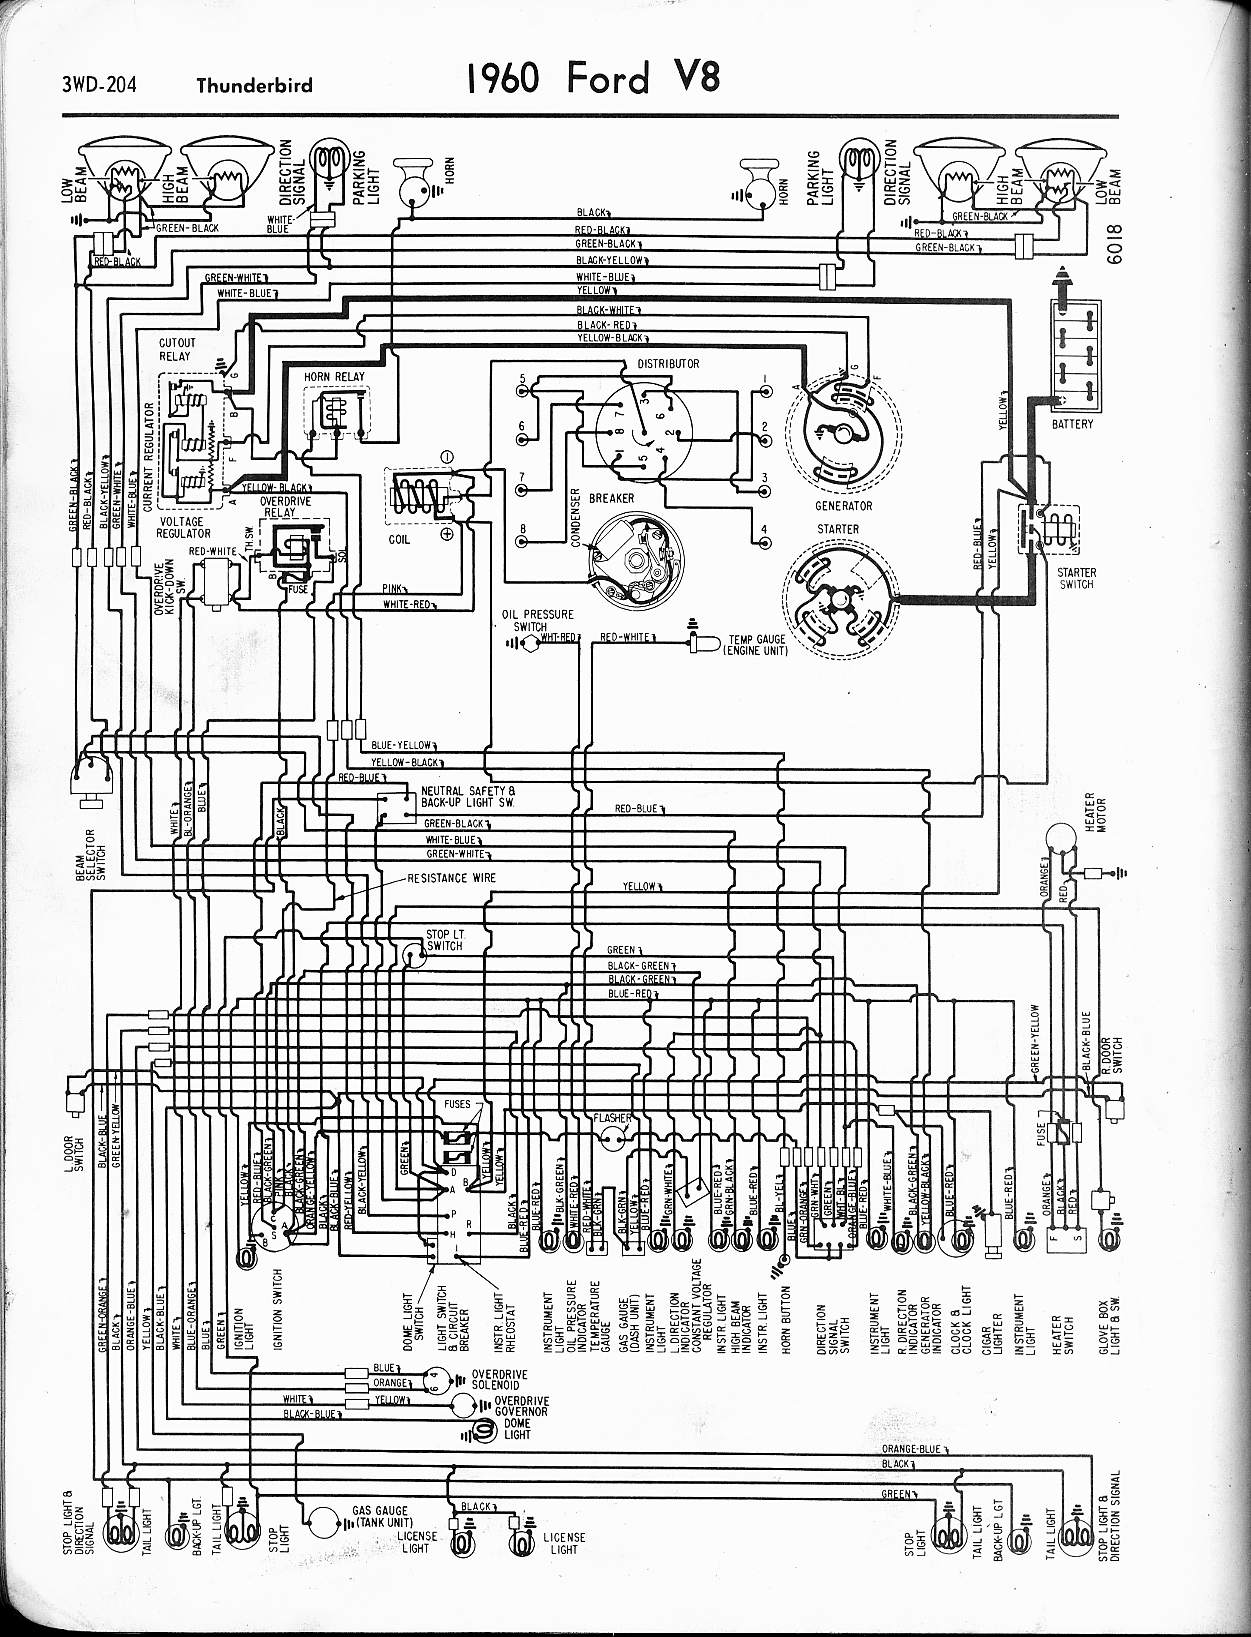 1966 Newport Wiring Diagram Most Uptodate Info Mustang Diagrams Chrysler Libraries Rh W41 Mo Stein De